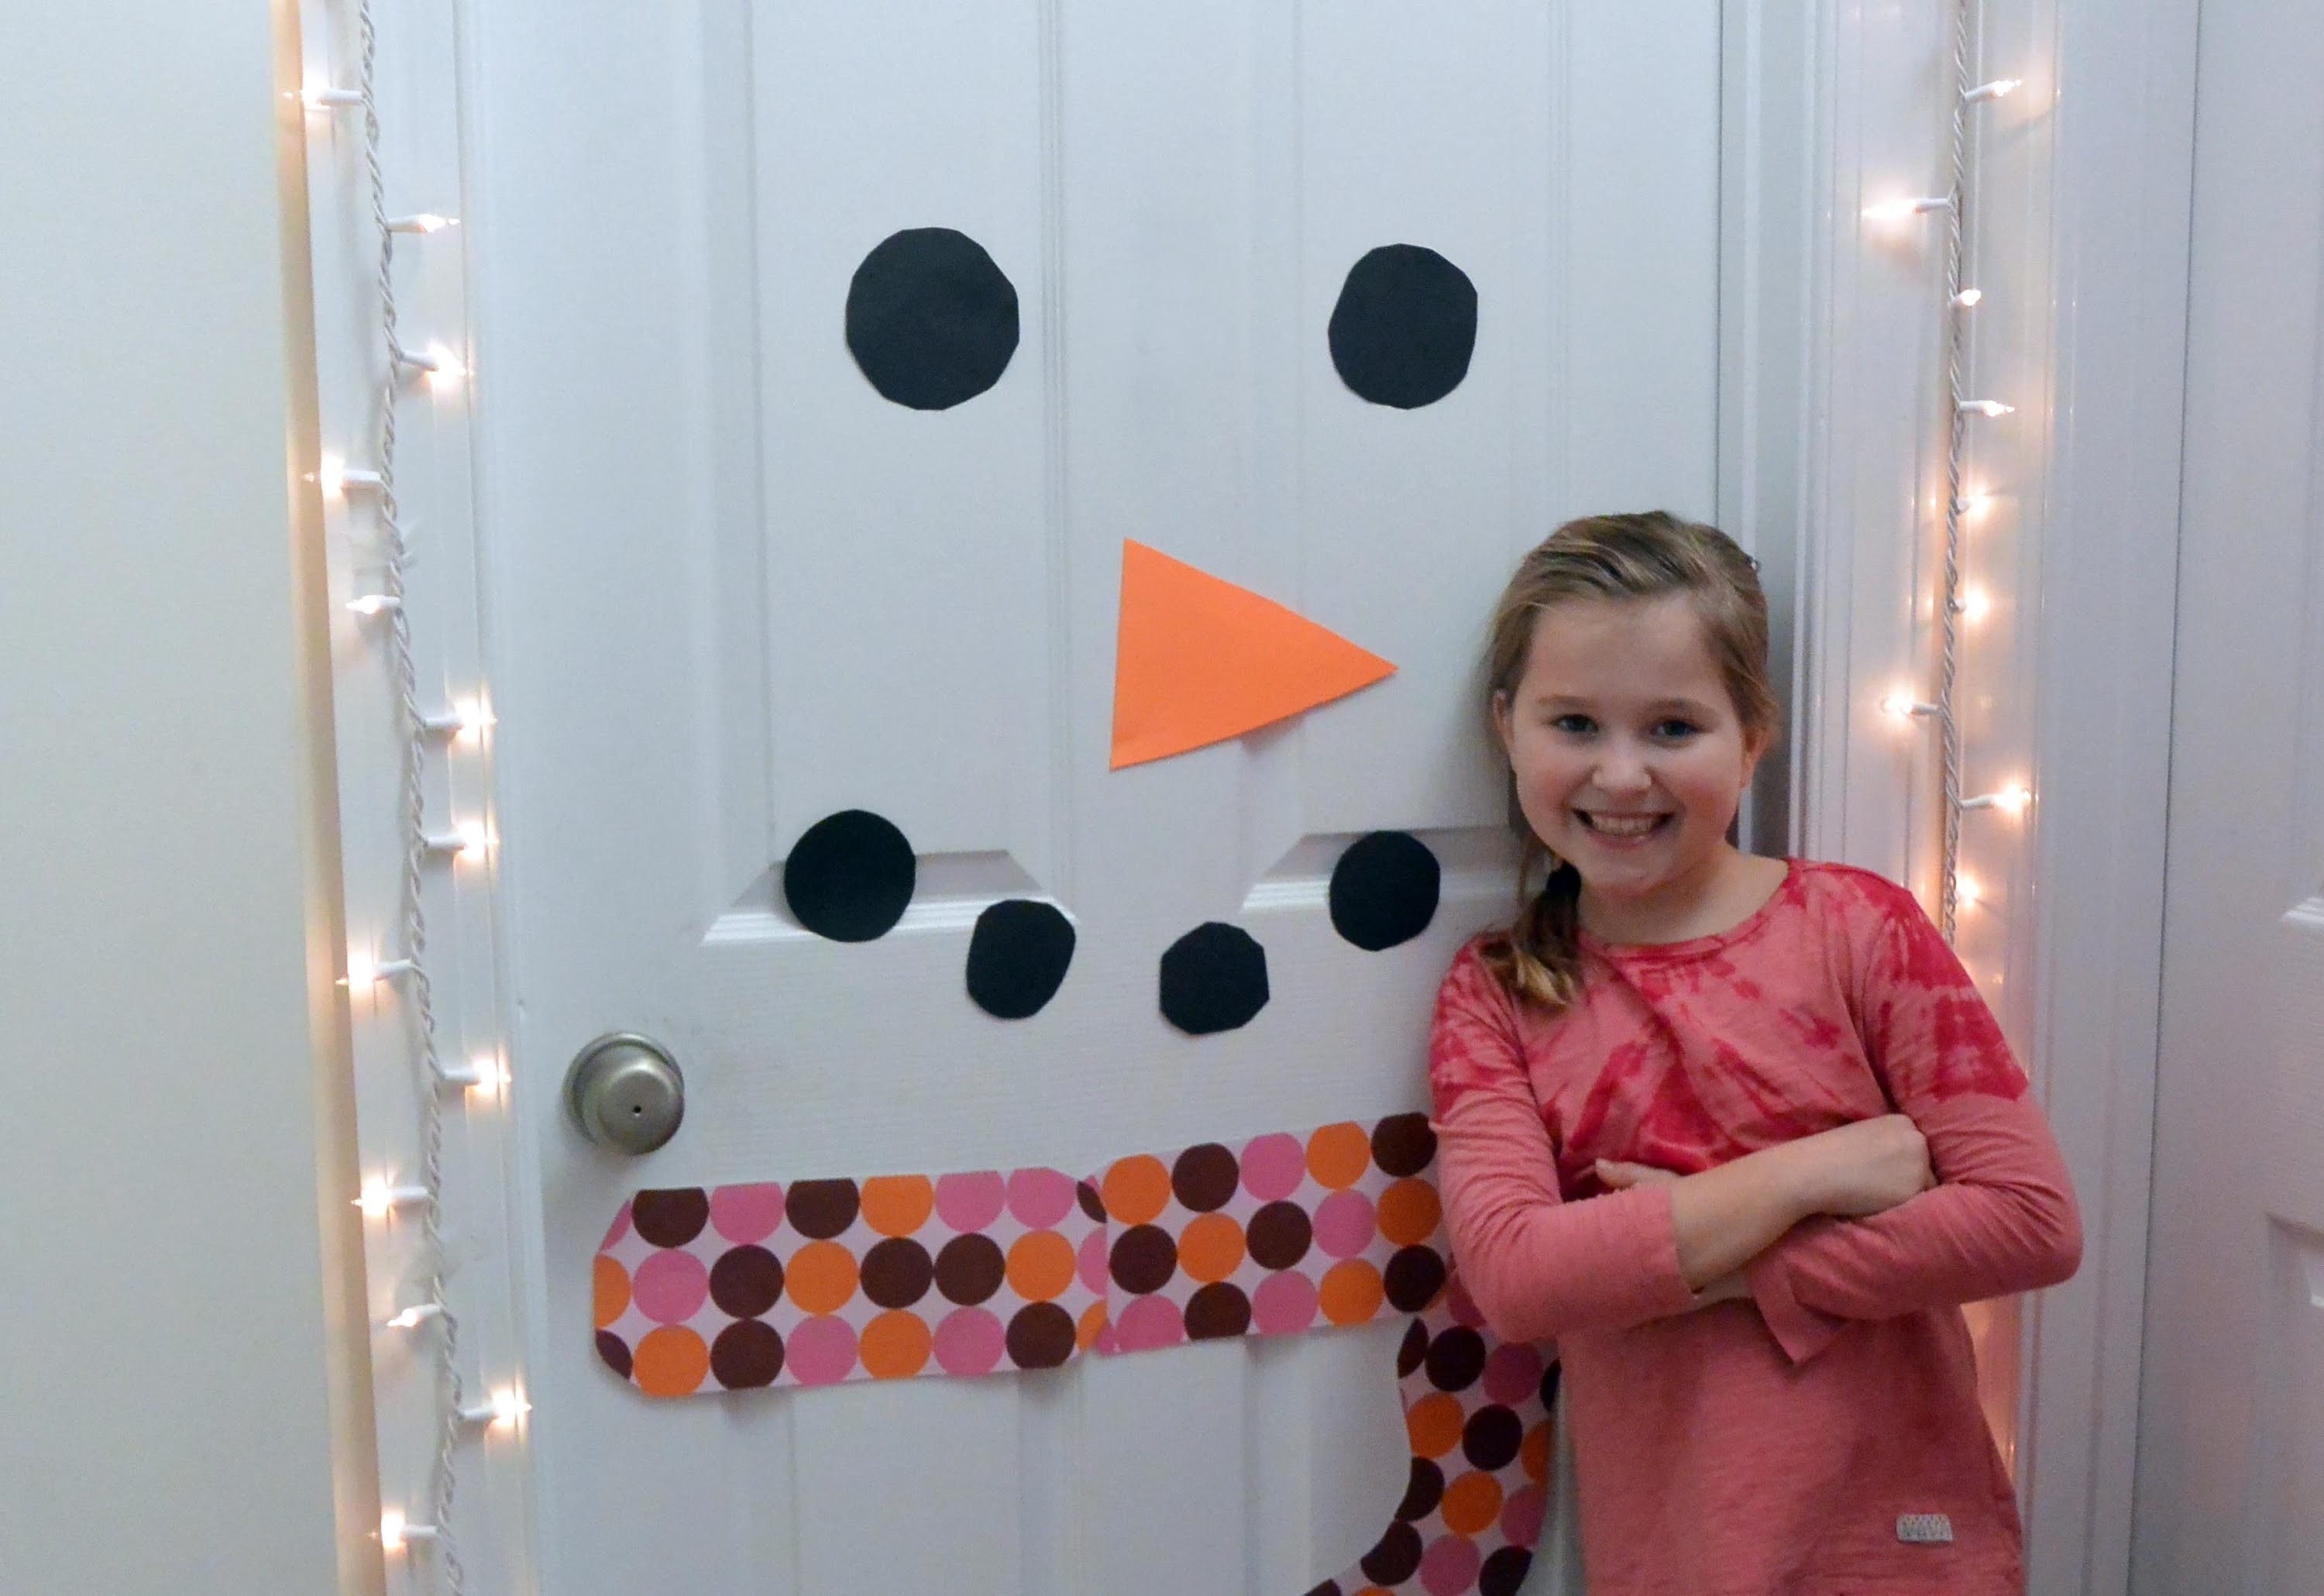 How to Make a Snowman Door Decoration